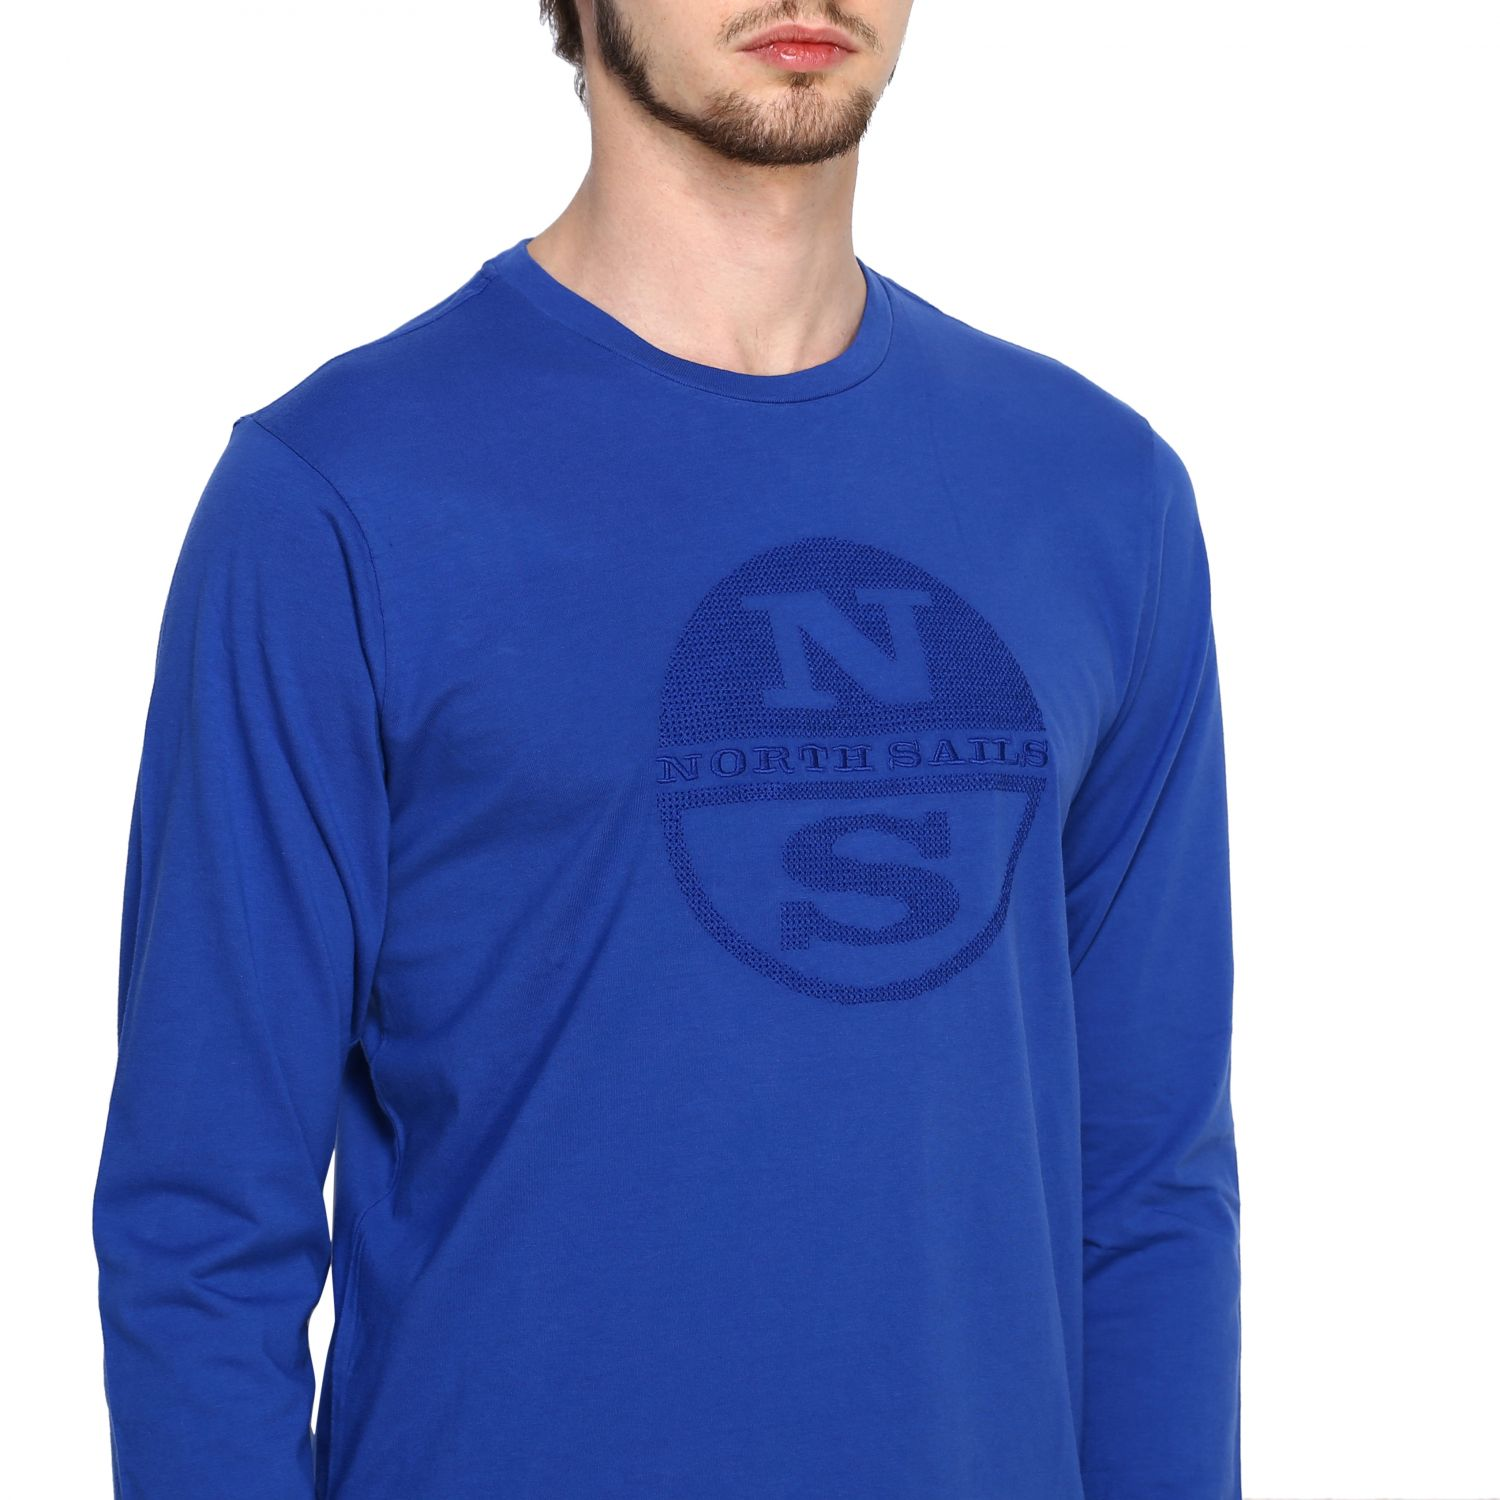 T-shirt homme North Sails bleu 5